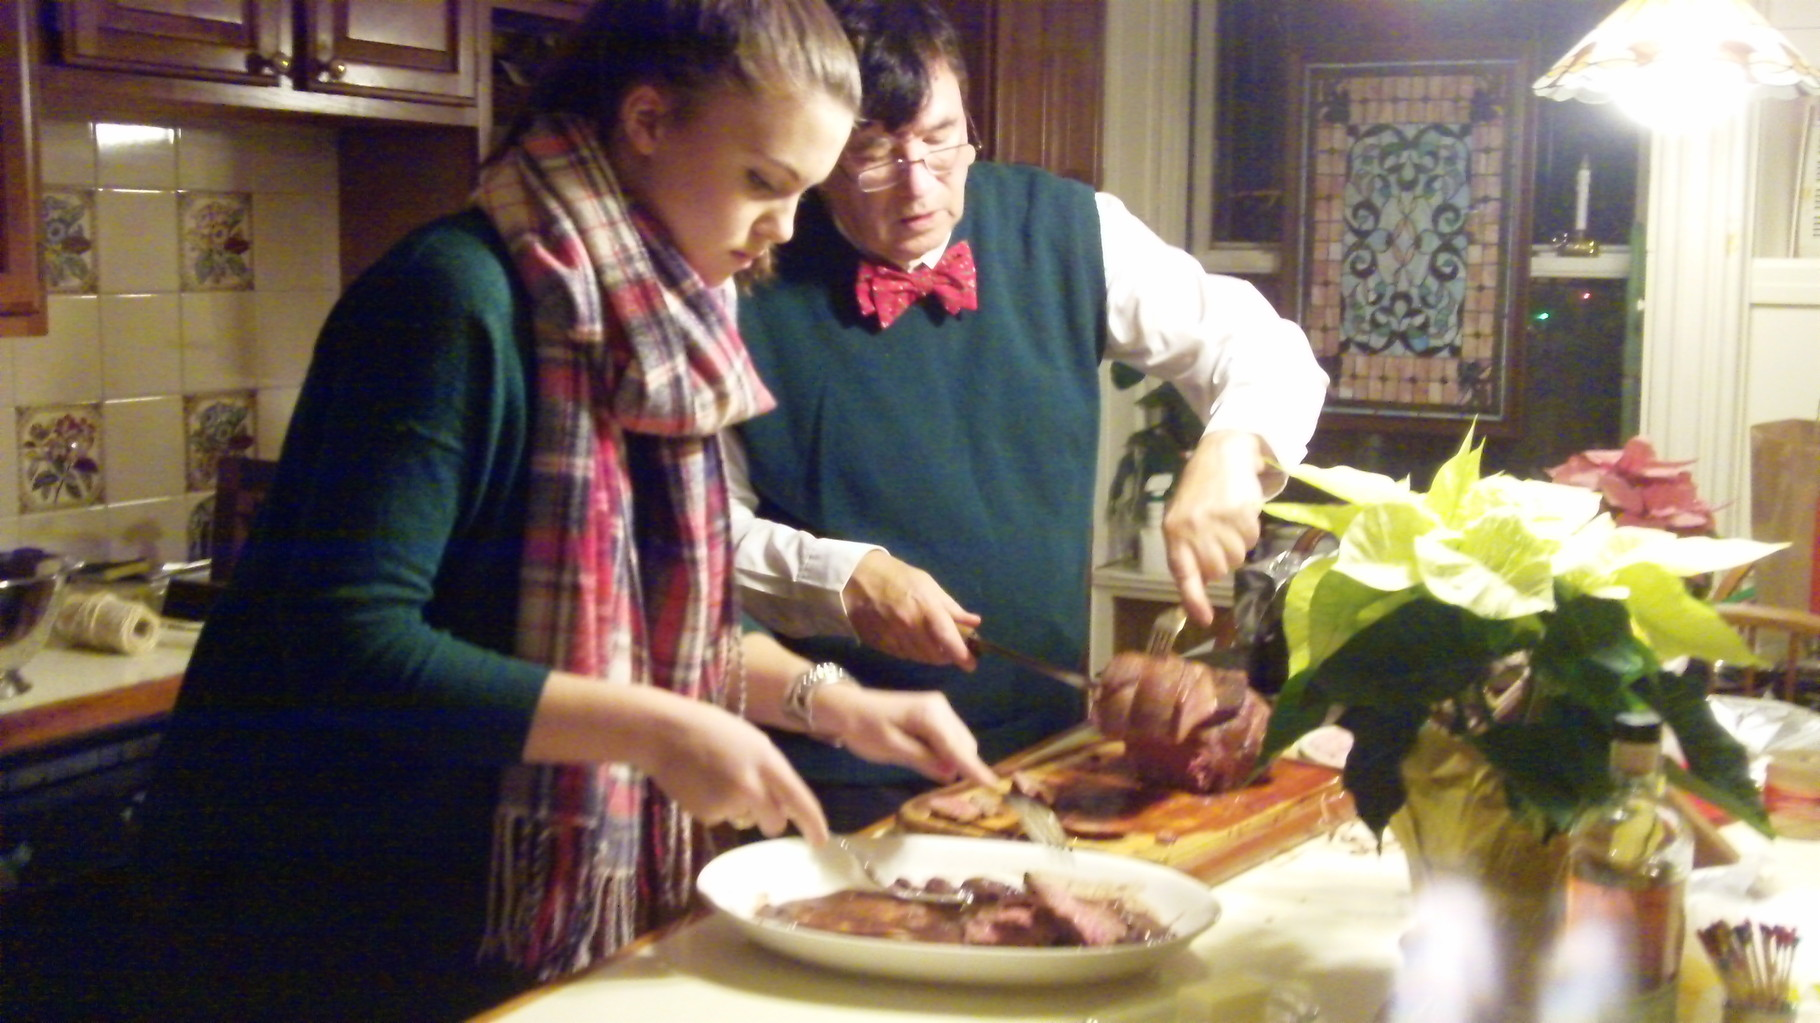 Kate helps John prepare the dinner.